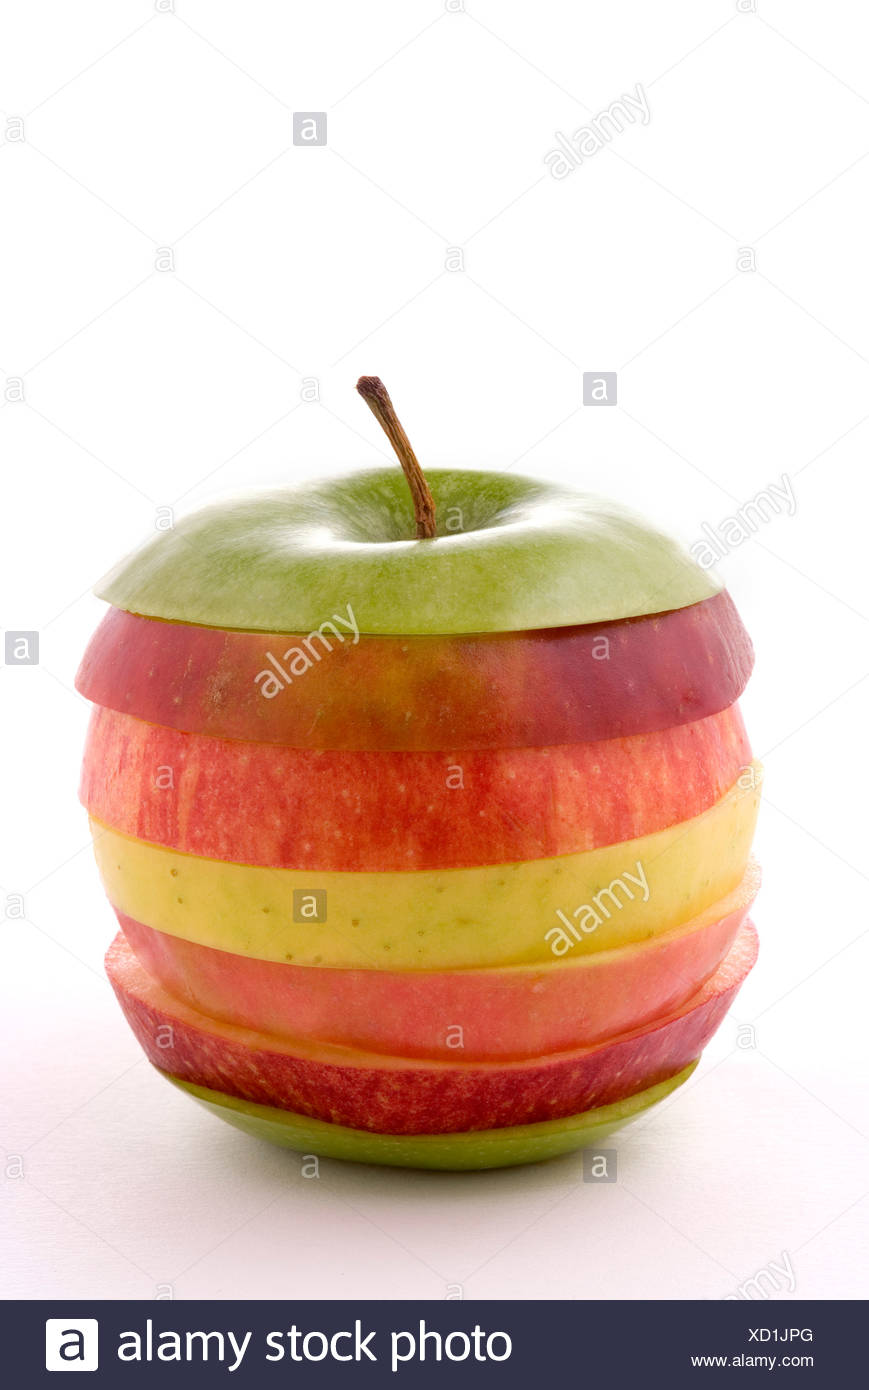 Slices of different apples forming an apple - Stock Image